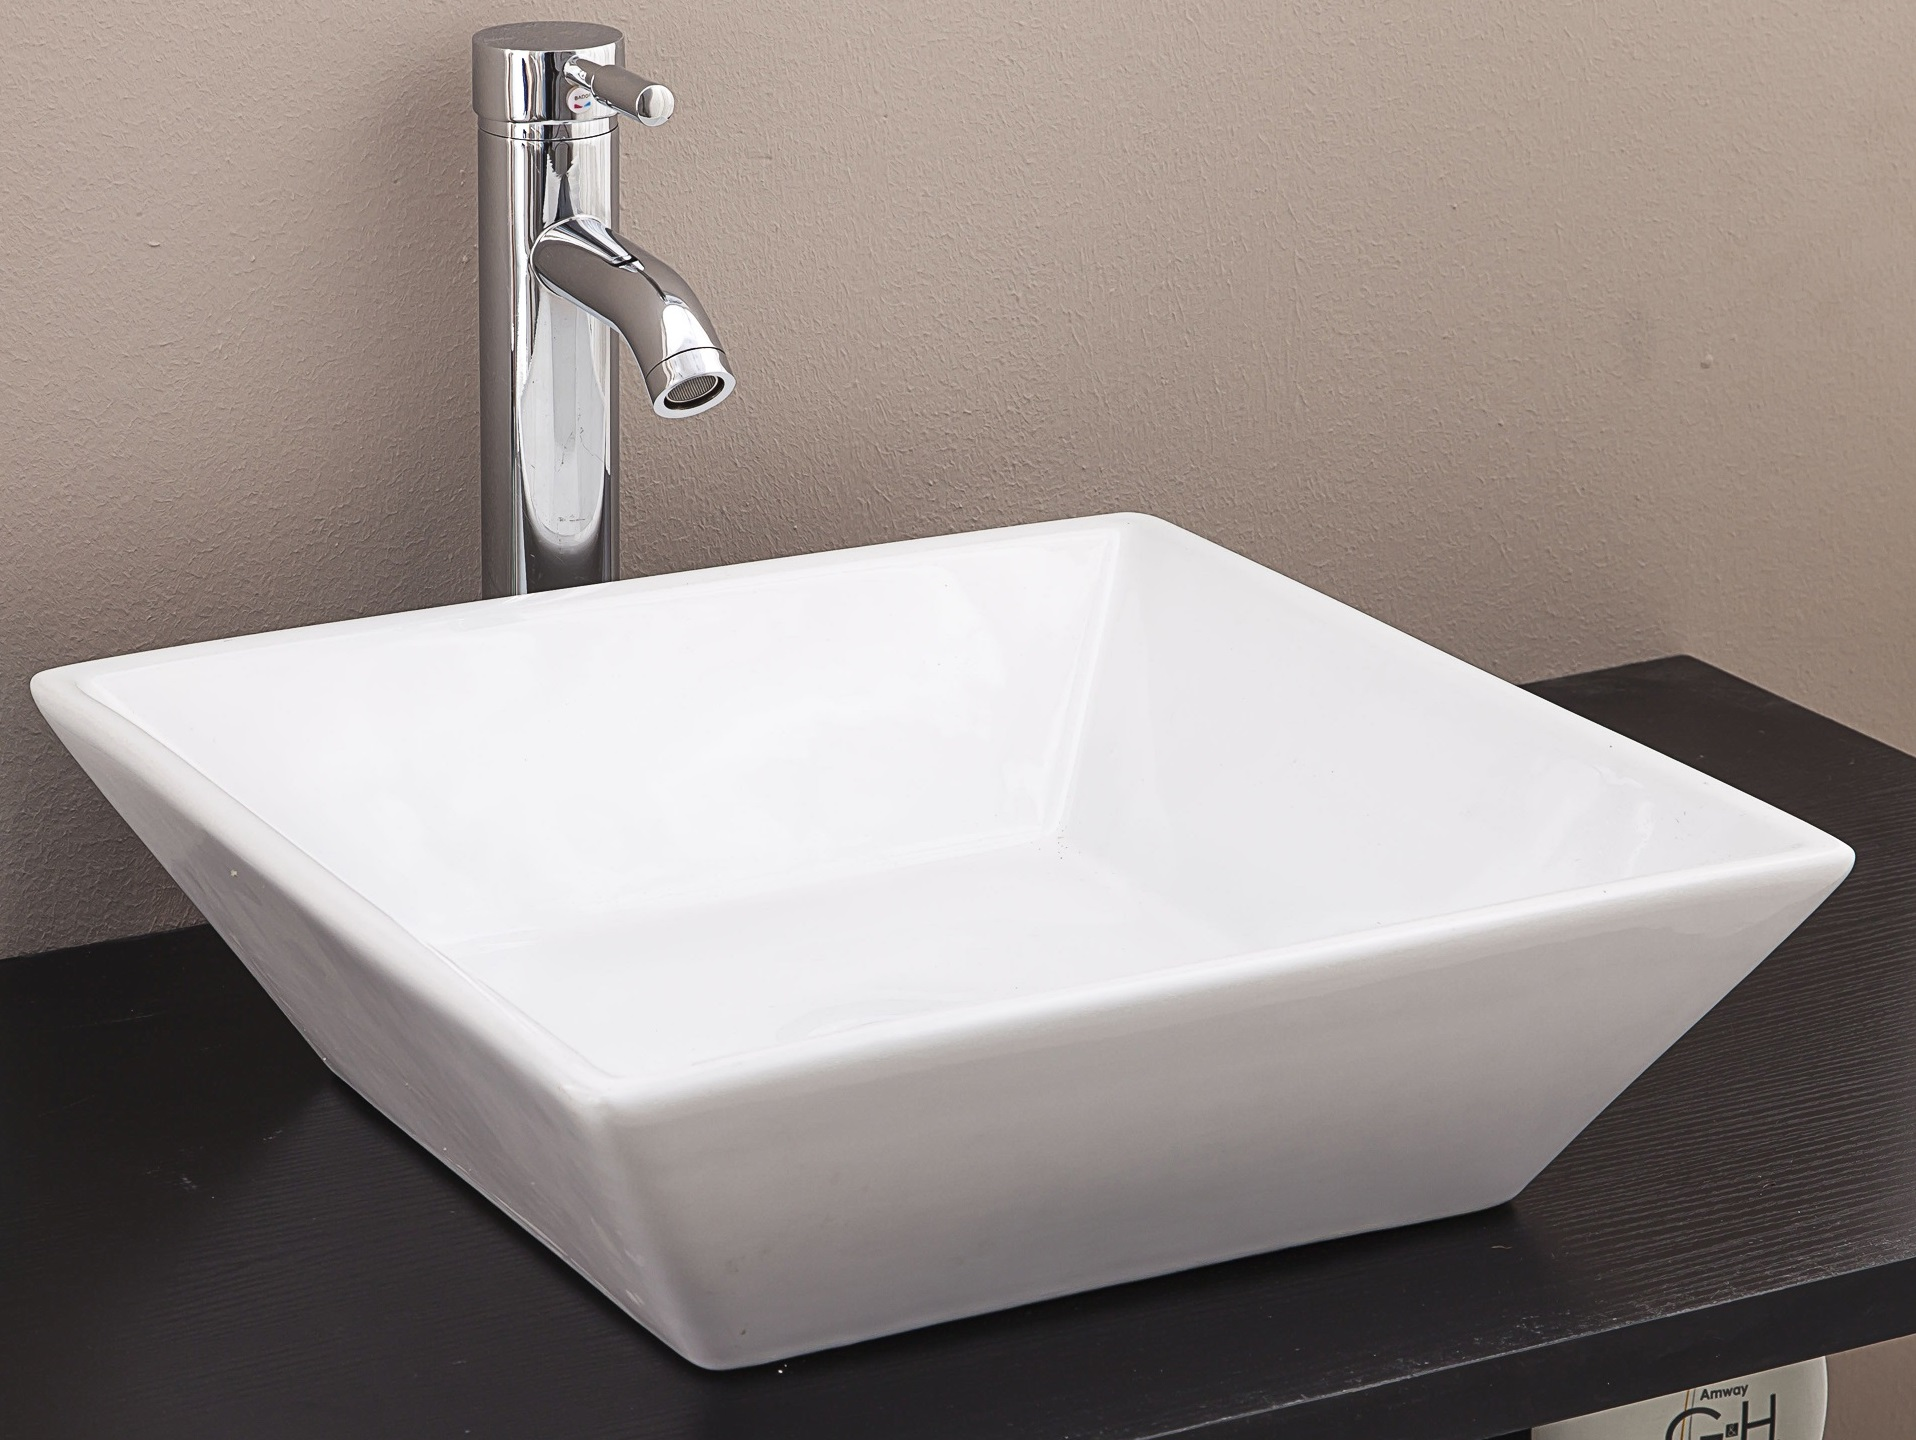 Bathroom Ceramic Rectangular Above Countertop Basin for Vanity  Z2469